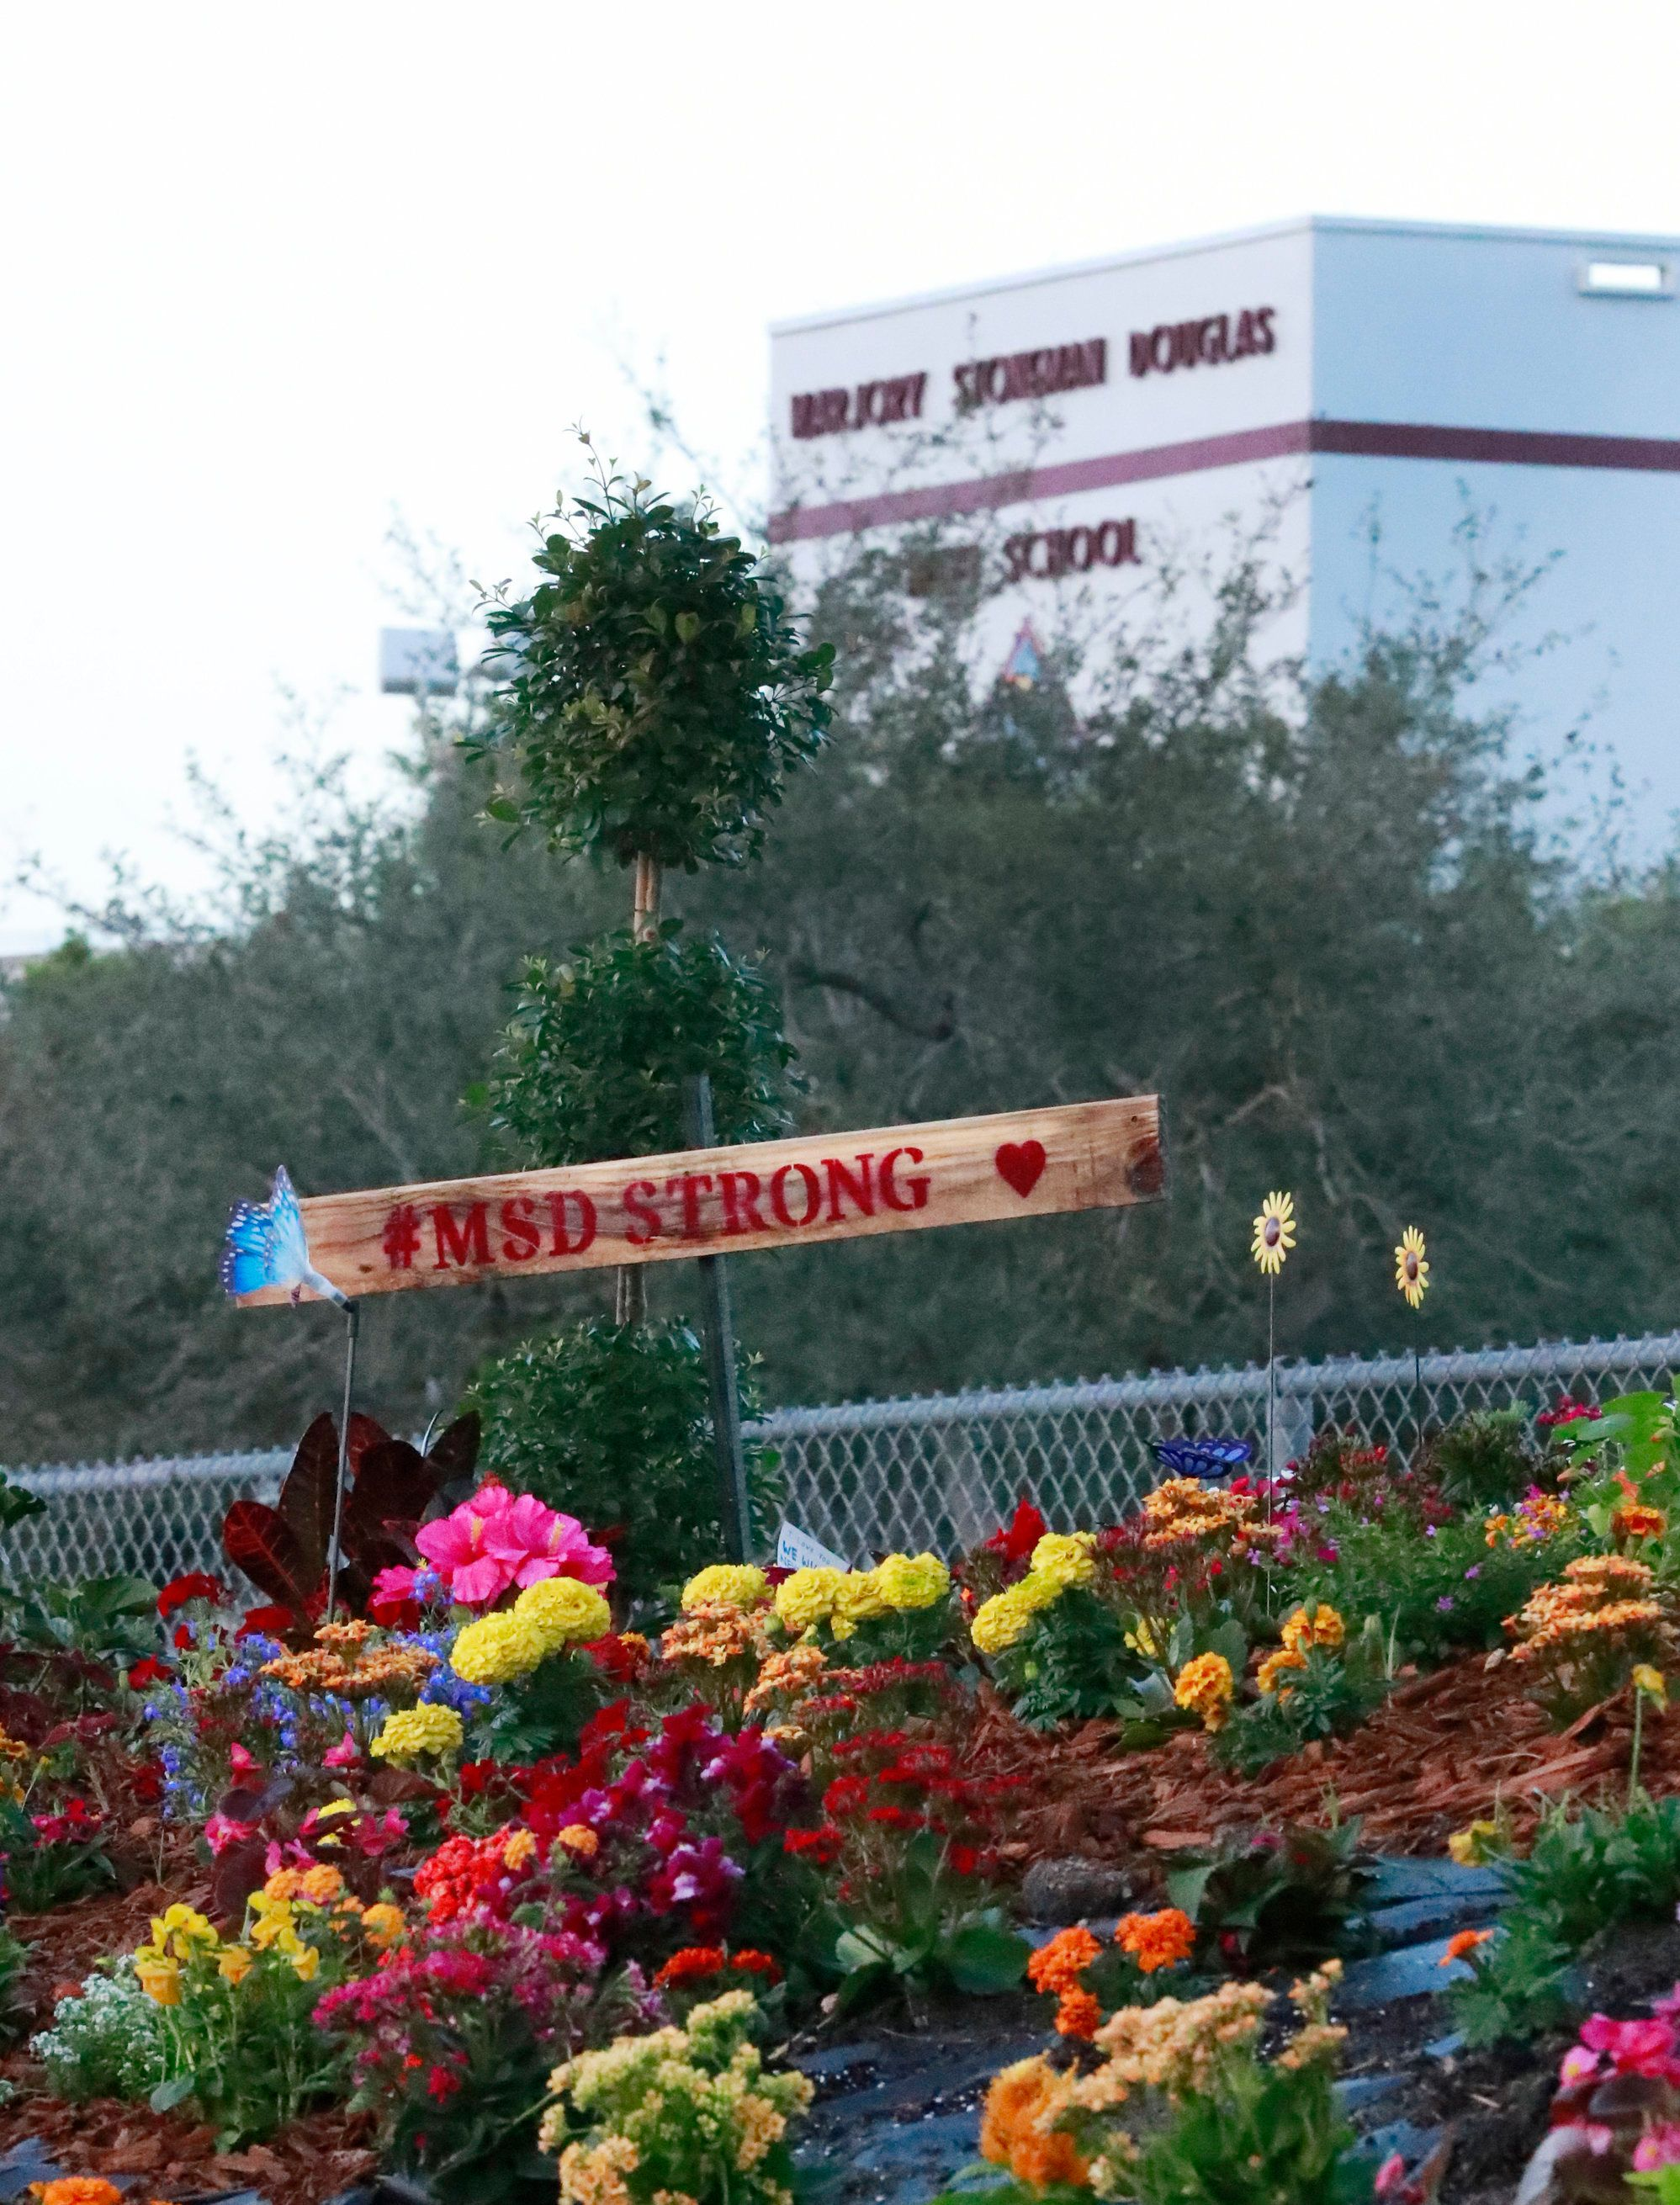 An MSD Strong sign is shown in a memorial garden outside Marjory Stoneman Douglas High School during the one-year anniversary of the school shooting, Thursday, Feb. 14, 2019, in Parkland, Fla. A year ago on Thursday, 14 students and three staff members were killed when a gunman opened fire at the high school.  (AP Photo/Wilfredo Lee)